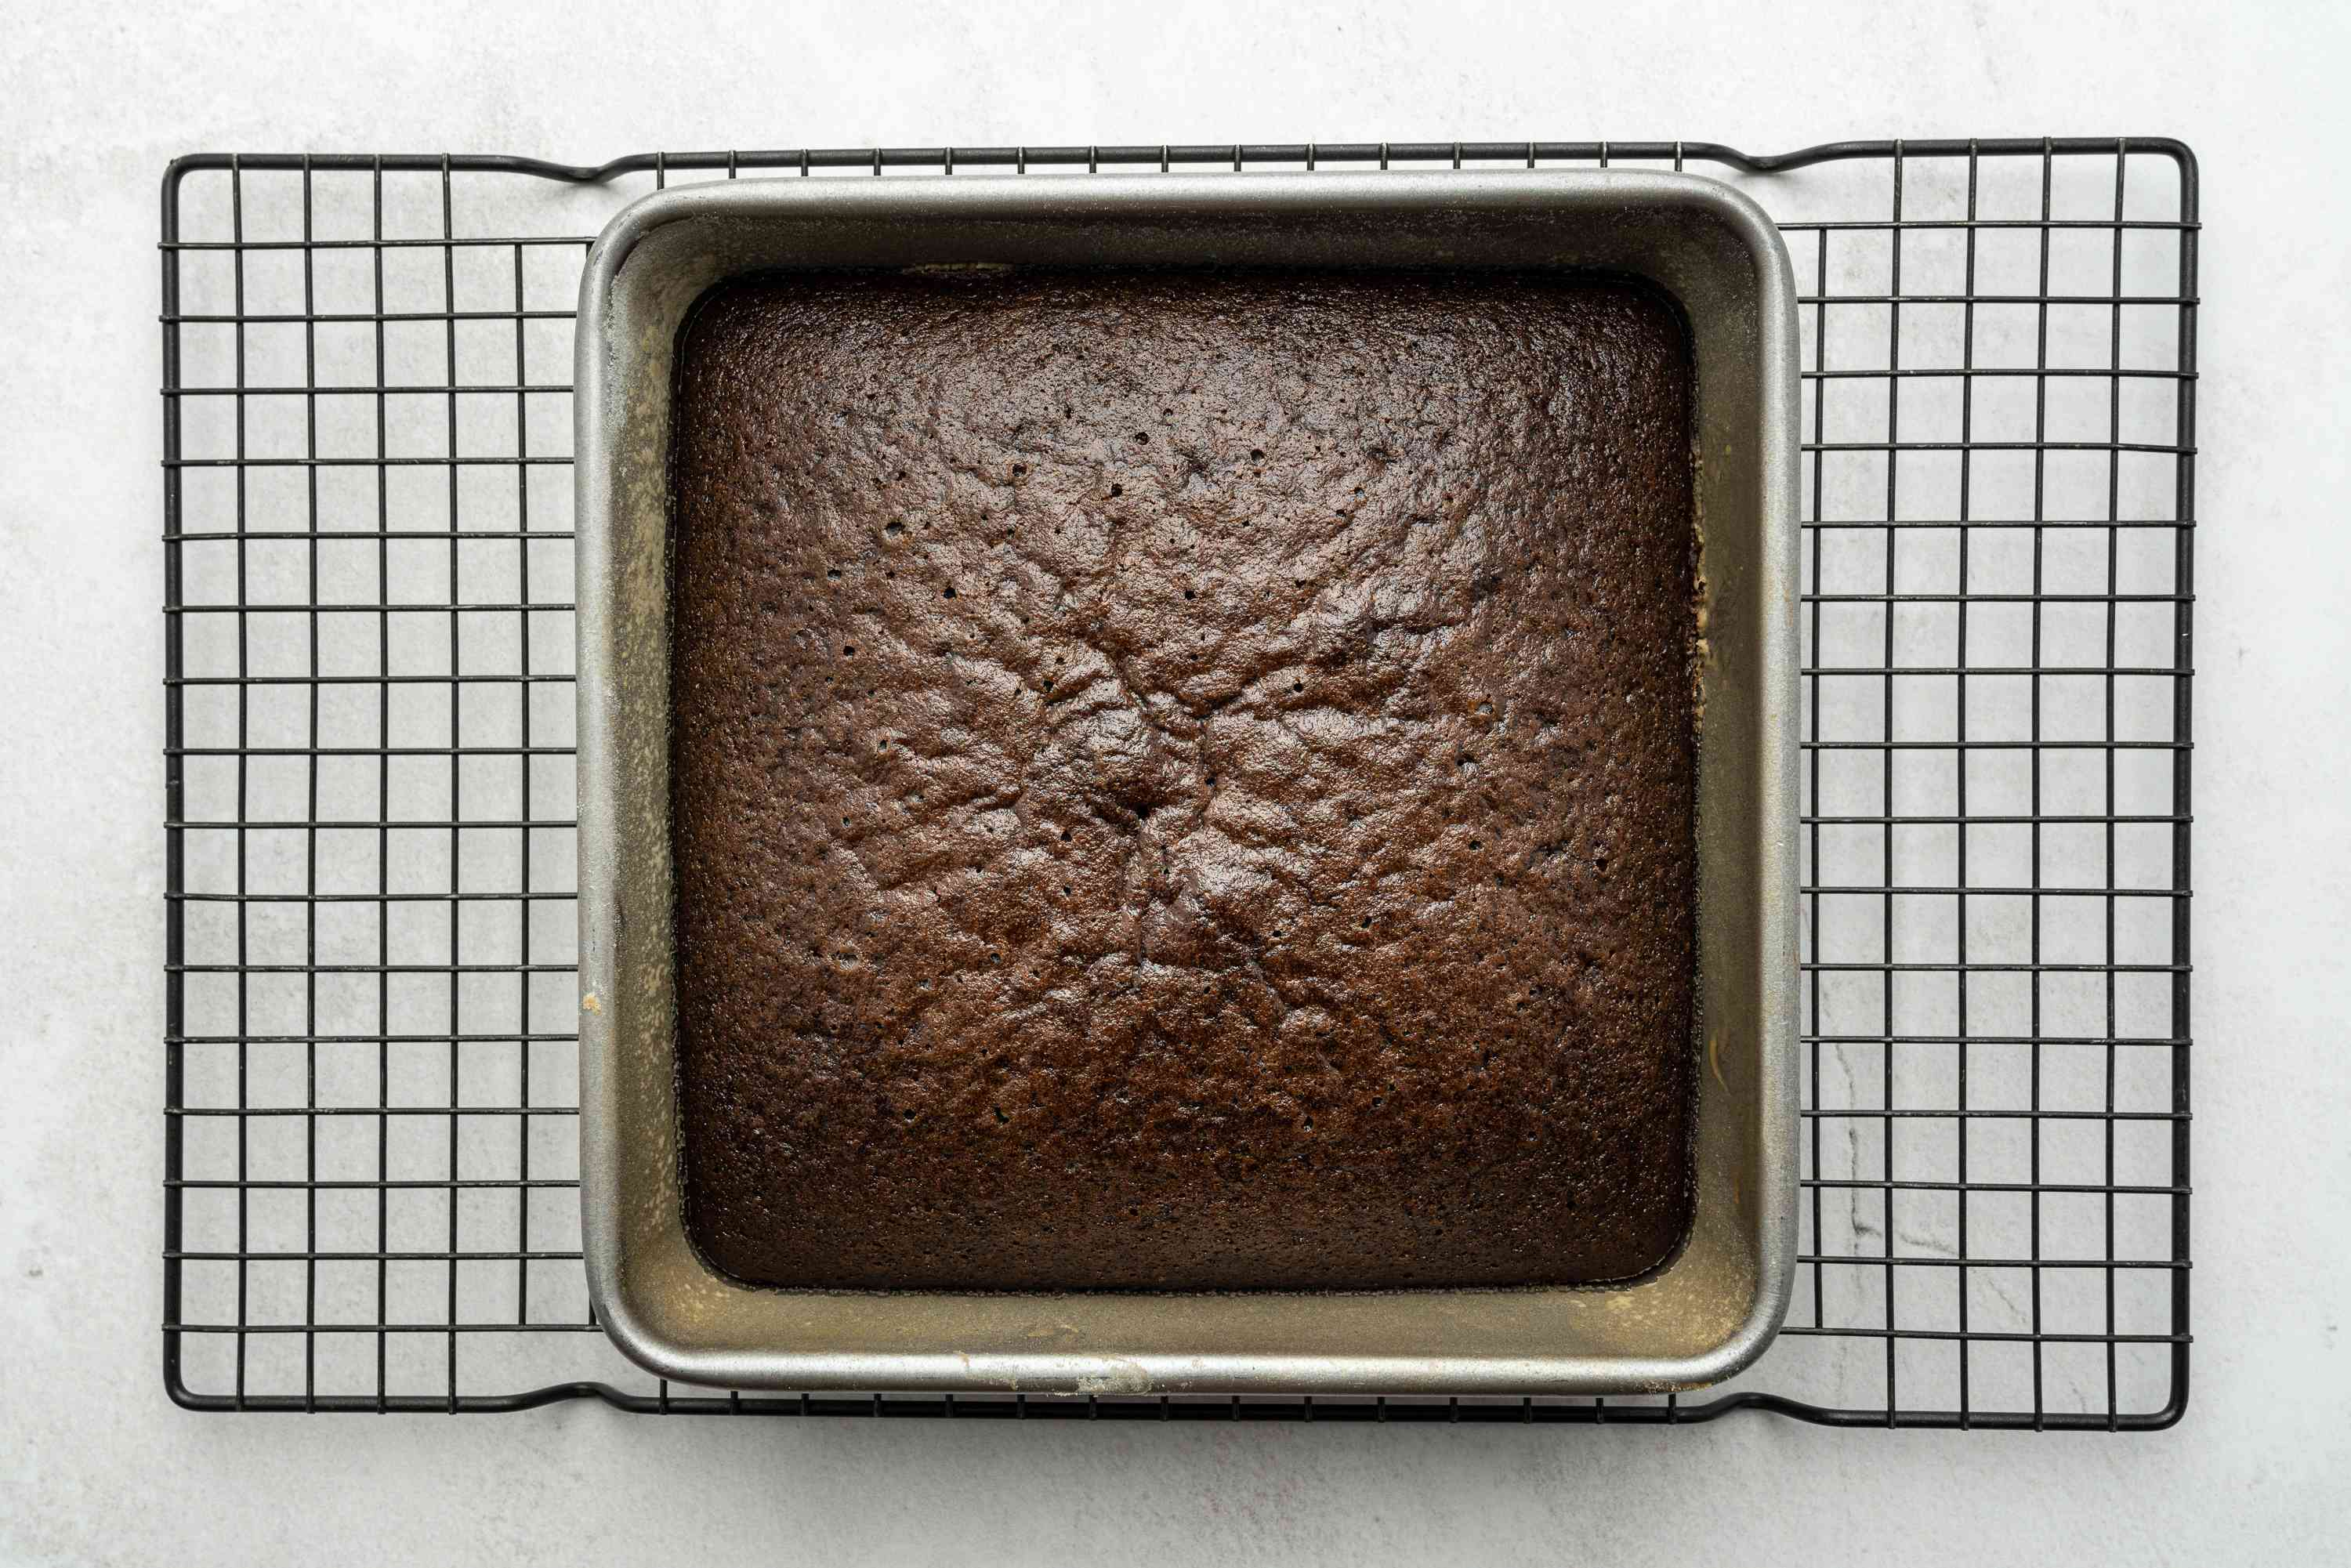 baked wacky cake in a baking pan on a cooling rack